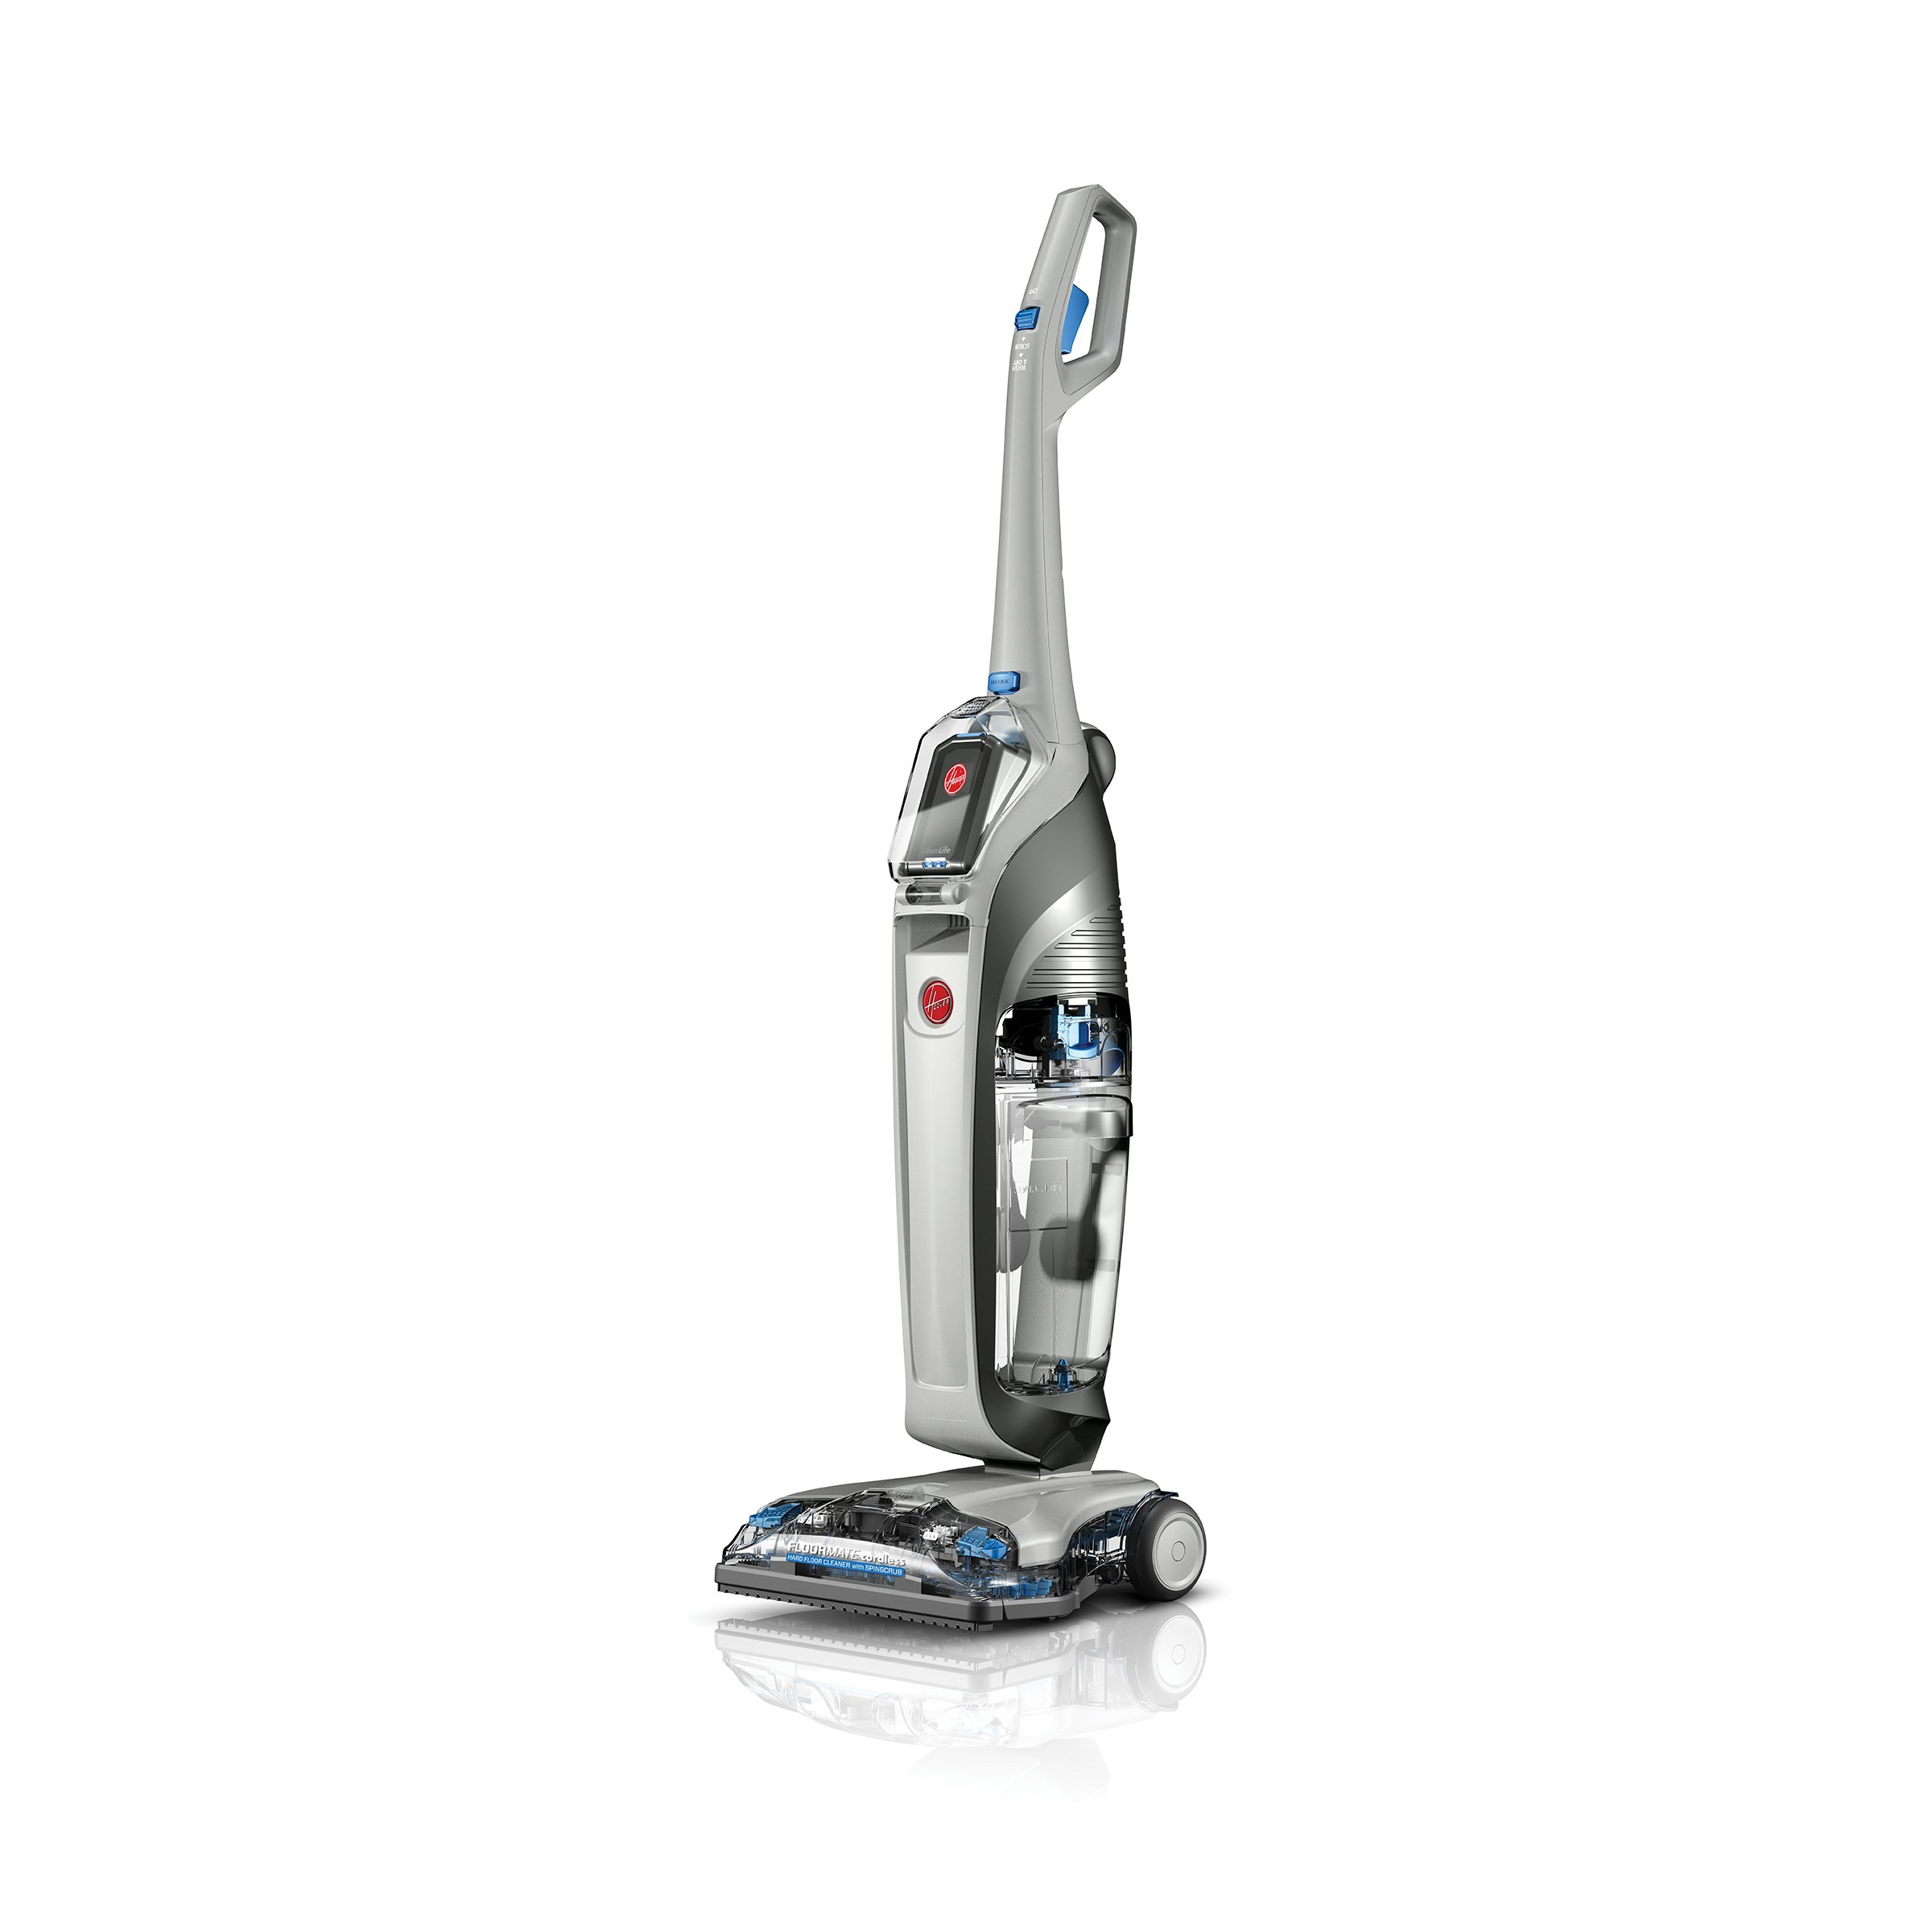 Hoover FloorMate Cordless Hard Floor Cleaner, BH55100PC by Hoover (Image #15)